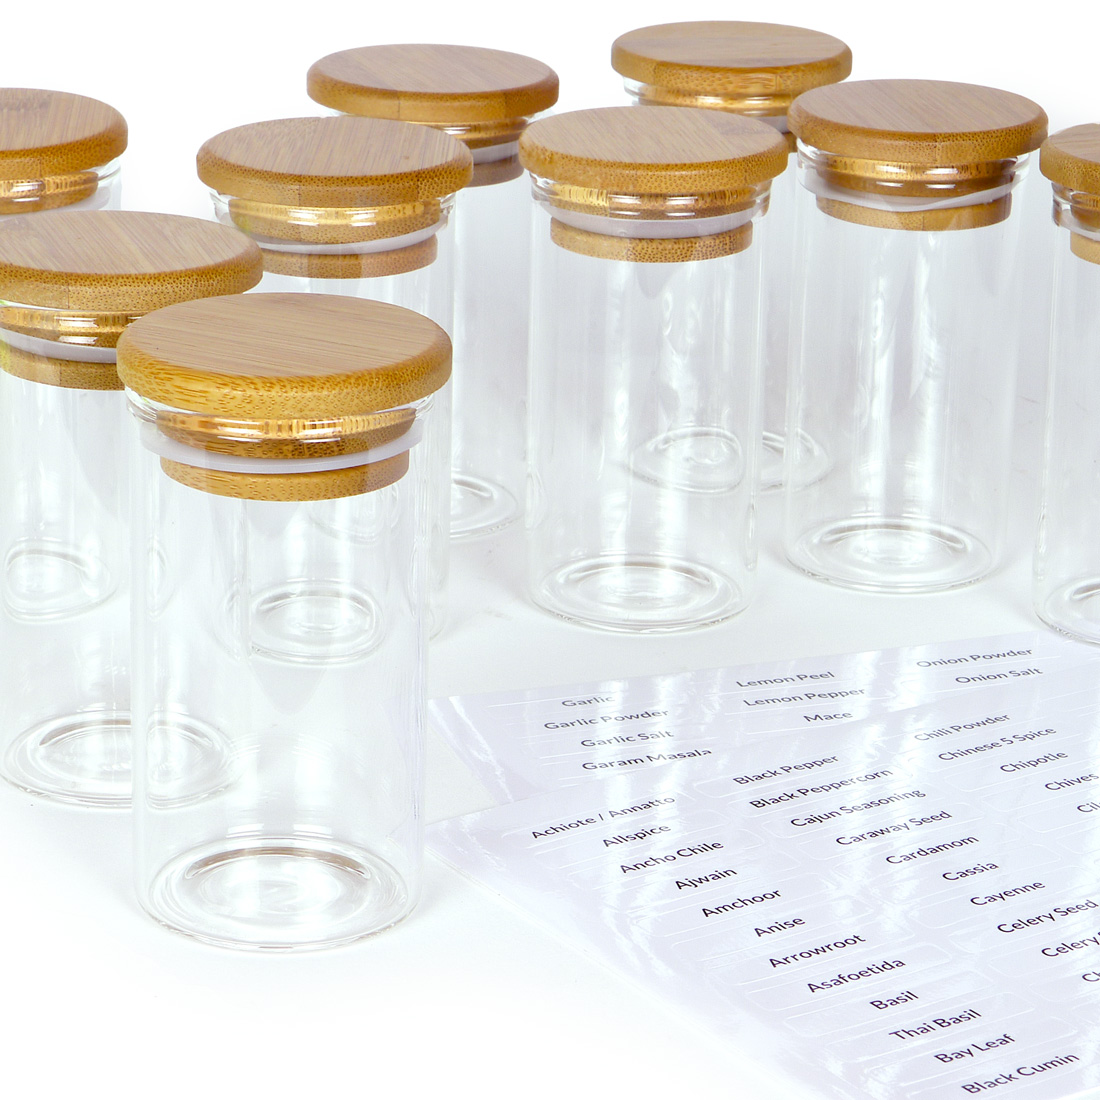 spiceberry home glass spice bottles with labels 4 oz set of 12